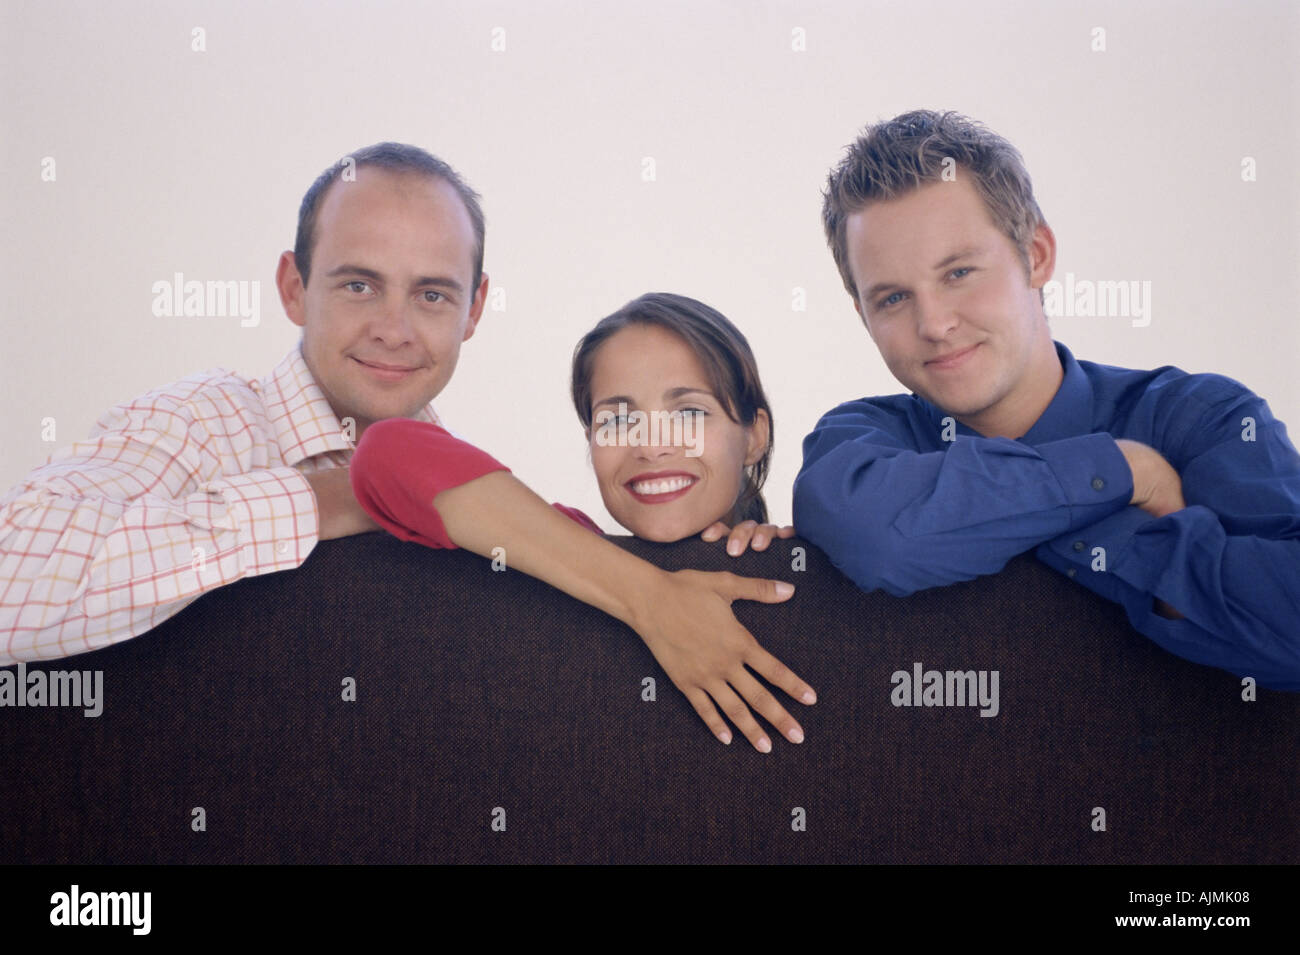 Three colleagues leaning on a divider - Stock Image